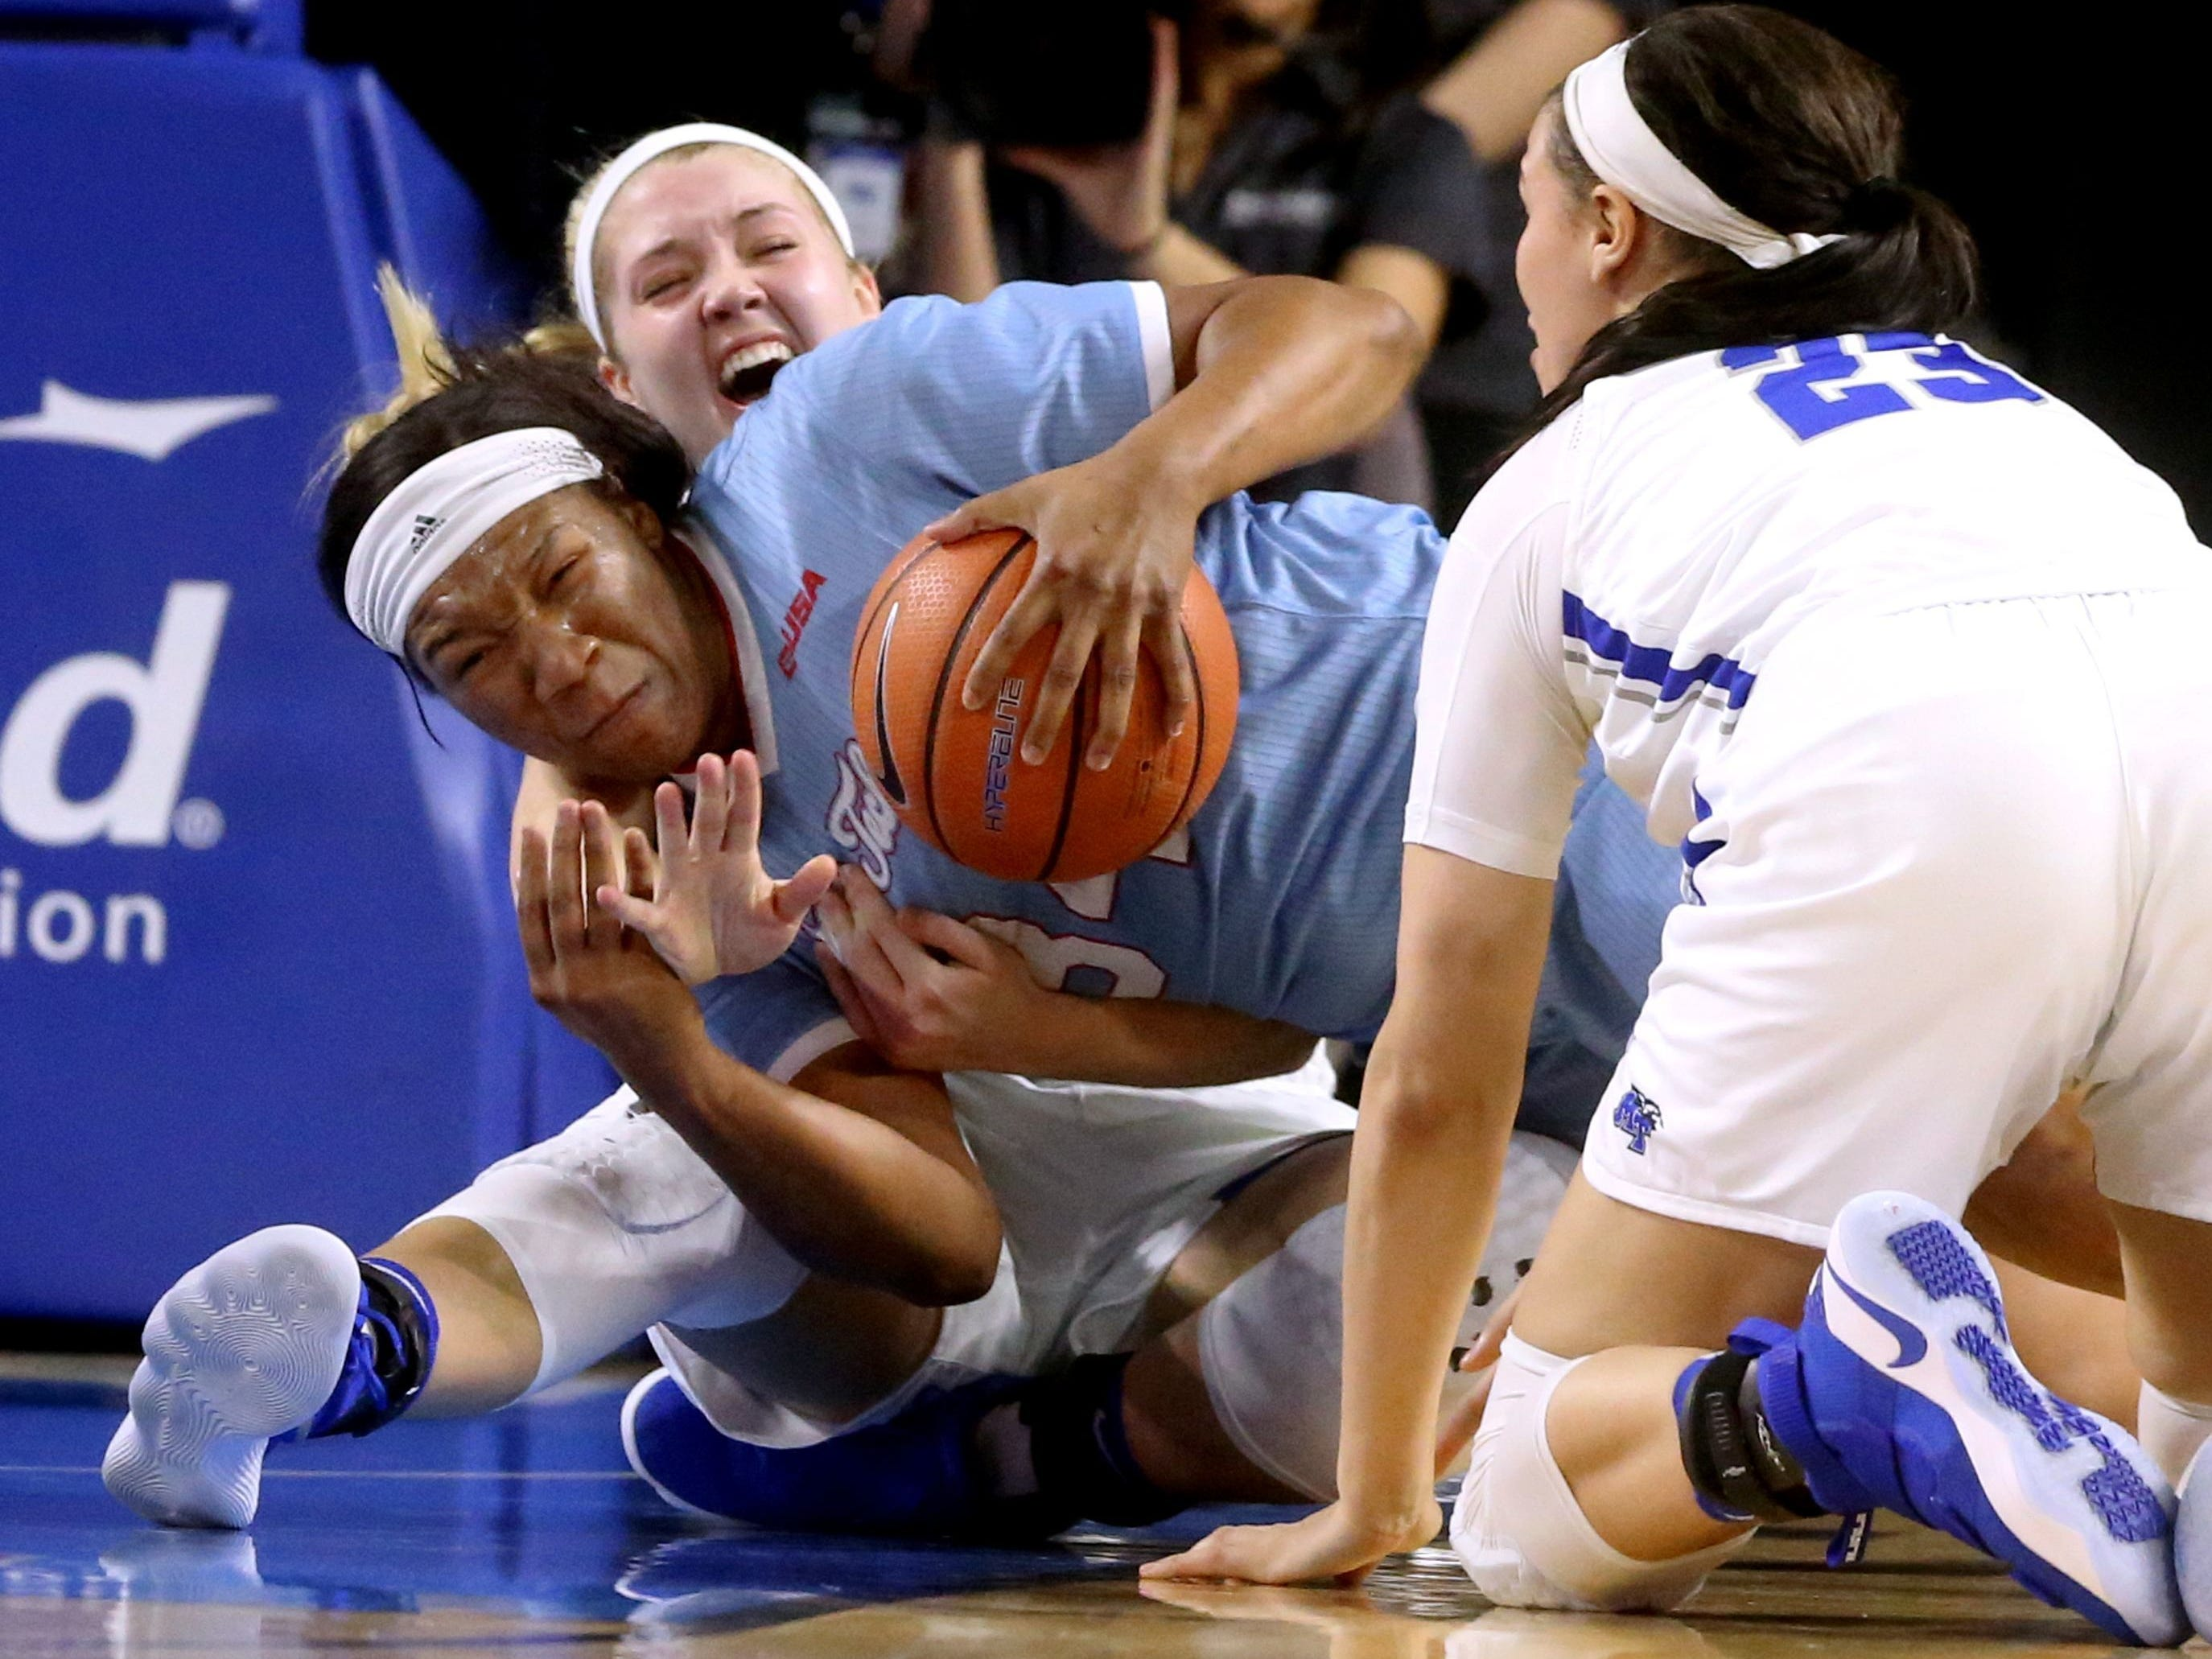 MTSU's Rebecca Reuter (24) and Gabby Lyon (23) and La Tech's Alexus Malone (34) all go after a loose ball, on Thursday, Feb. 1, 2018, at MTSU.